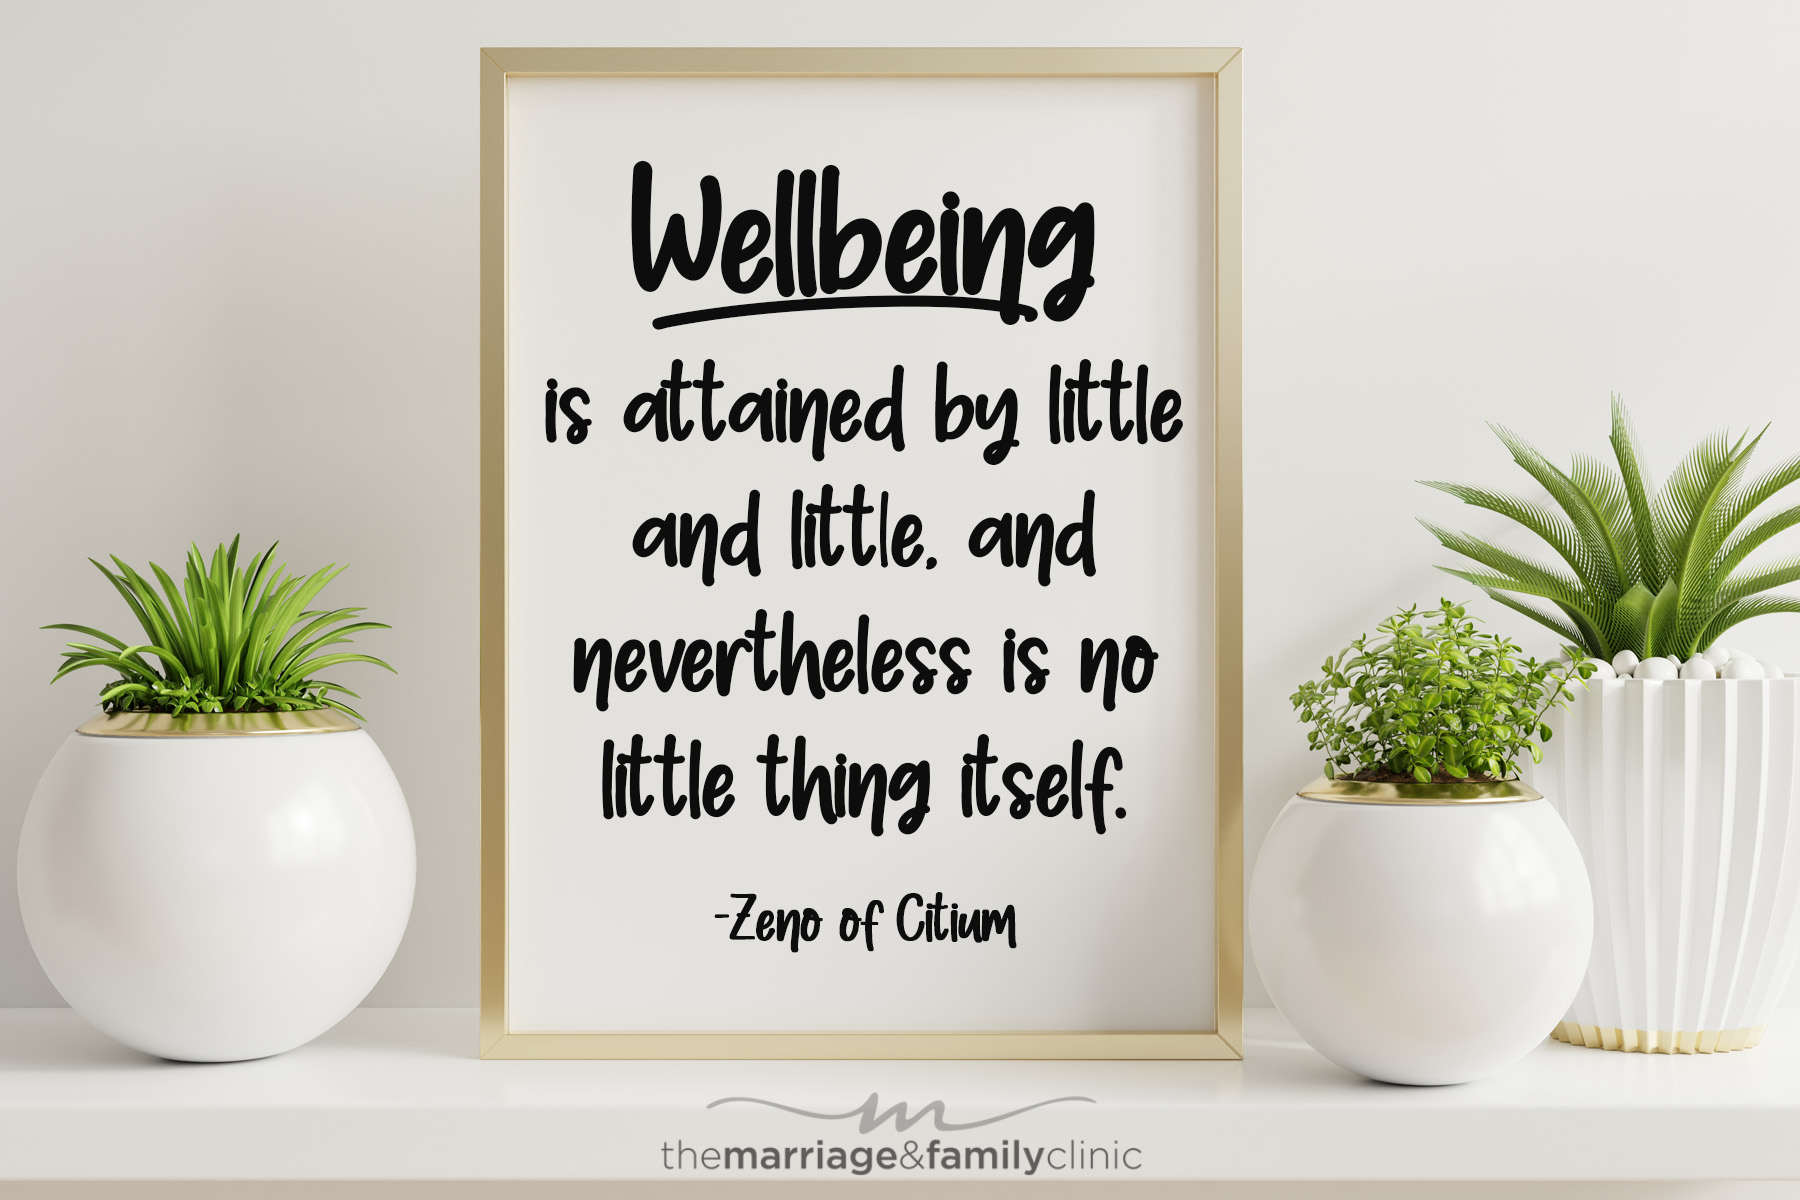 4 Wellness Tips for the Whole Family